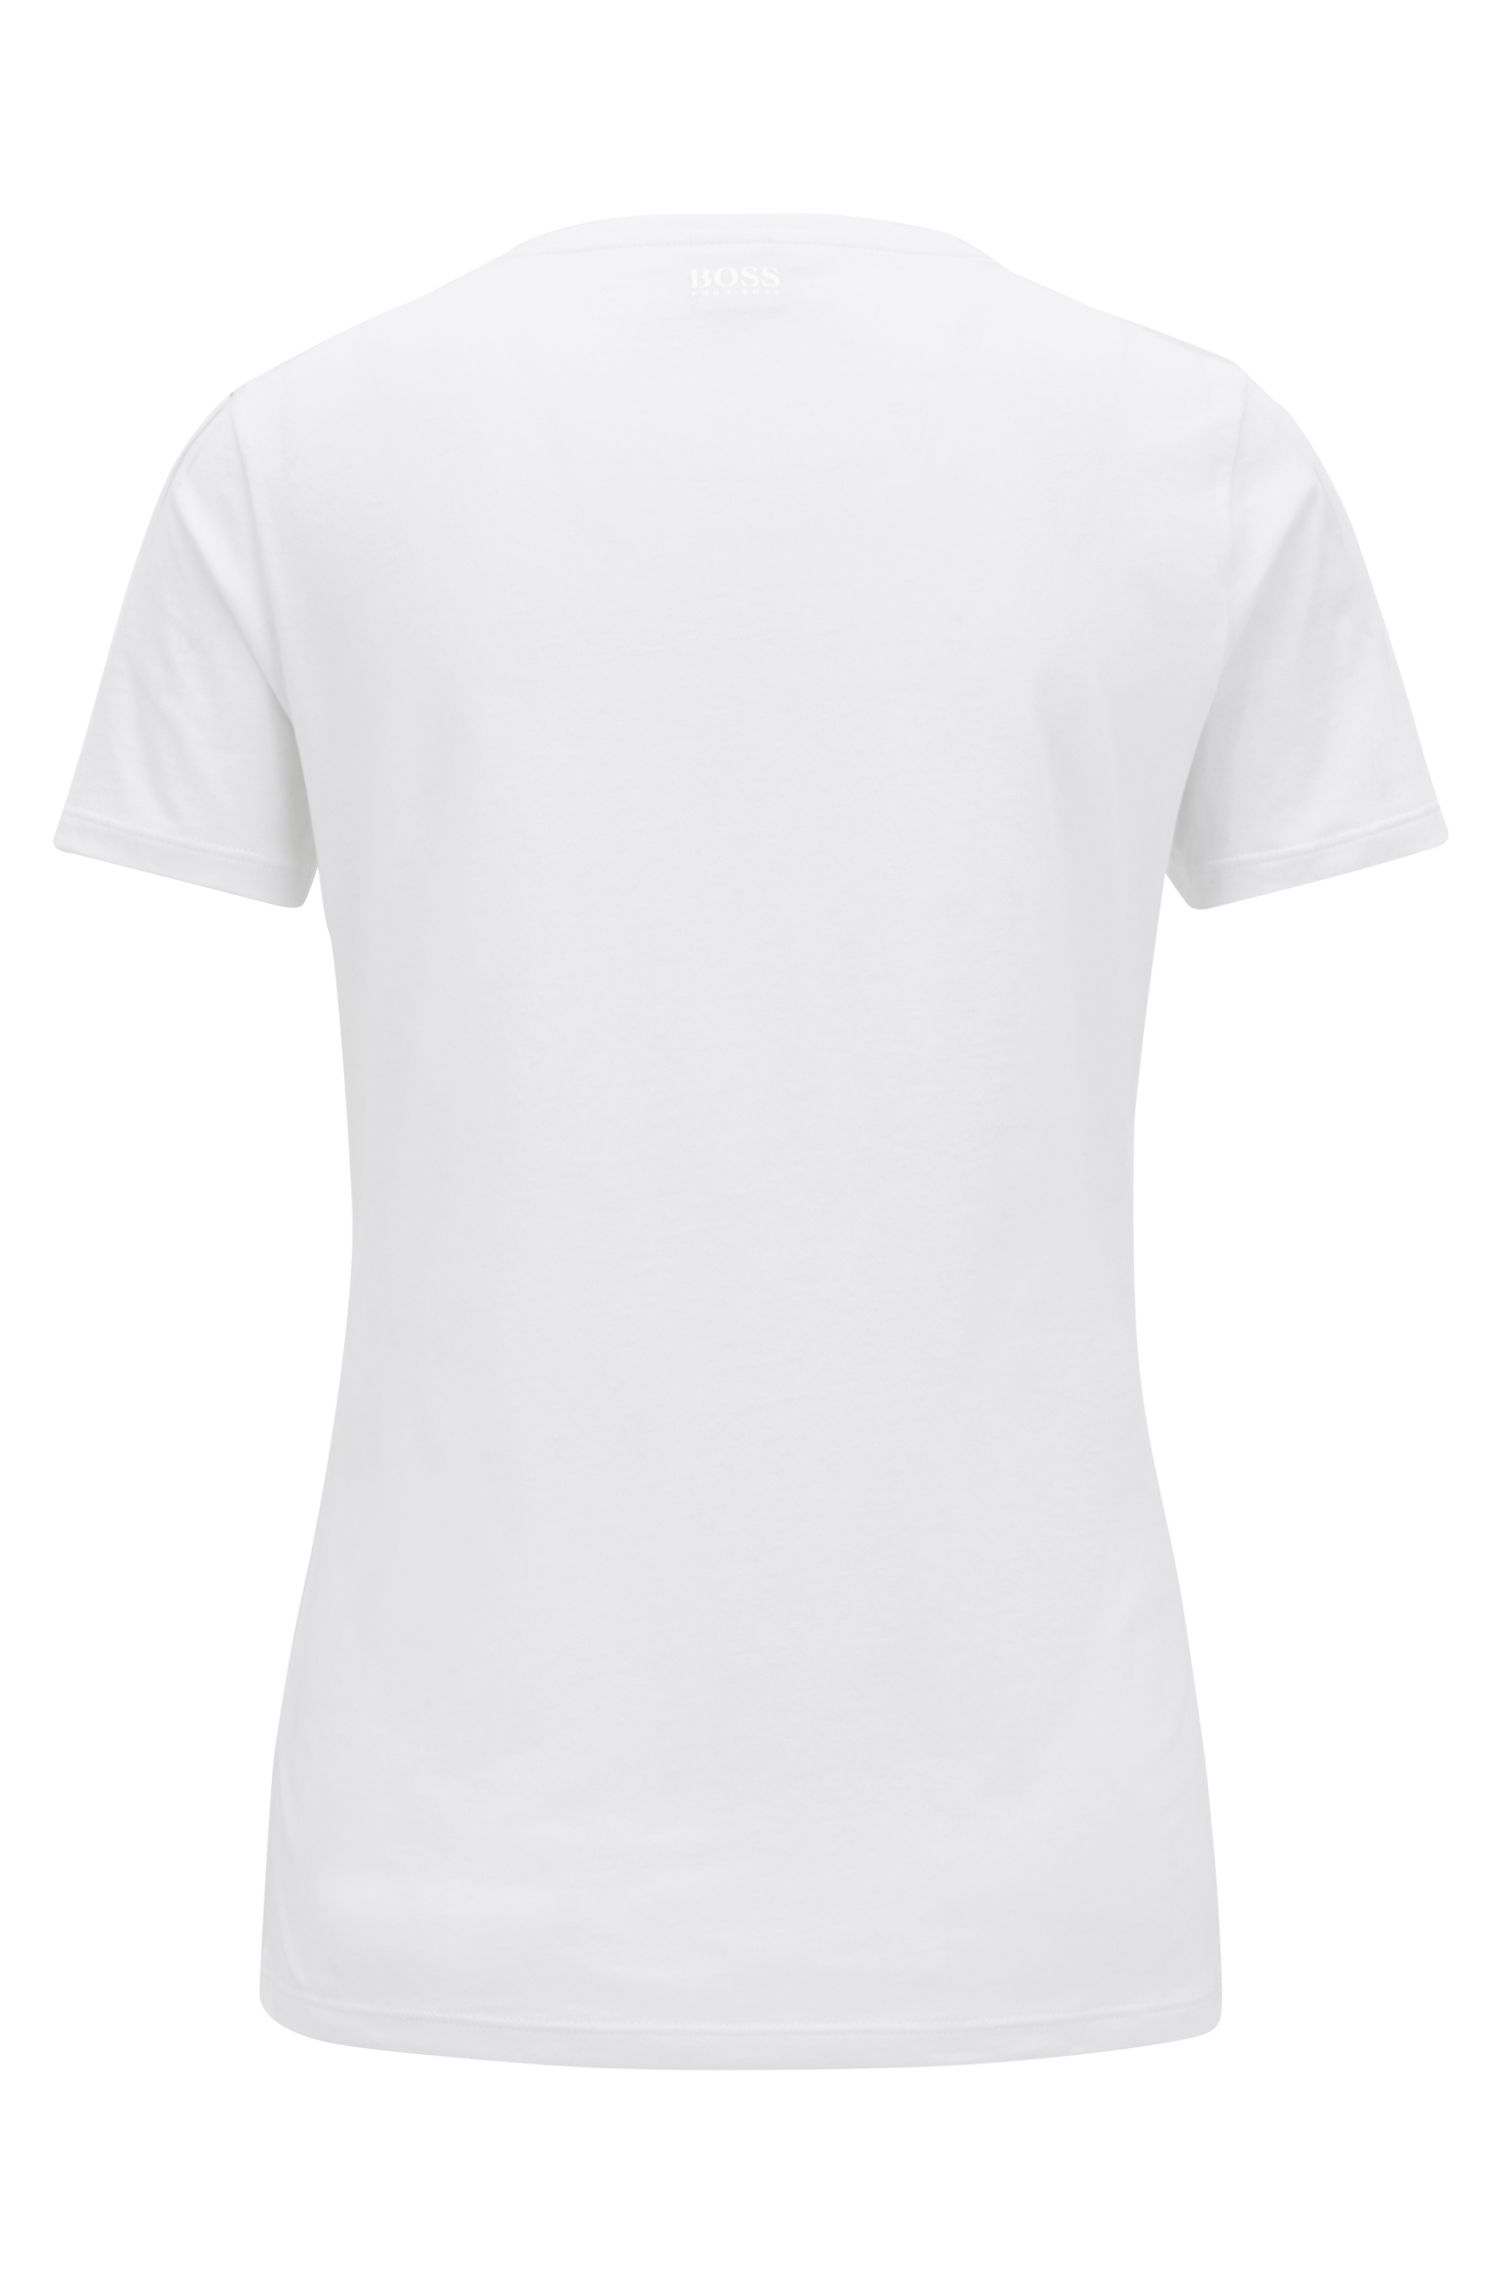 Slim-fit T-shirt in jersey cotton with printed slogan, White